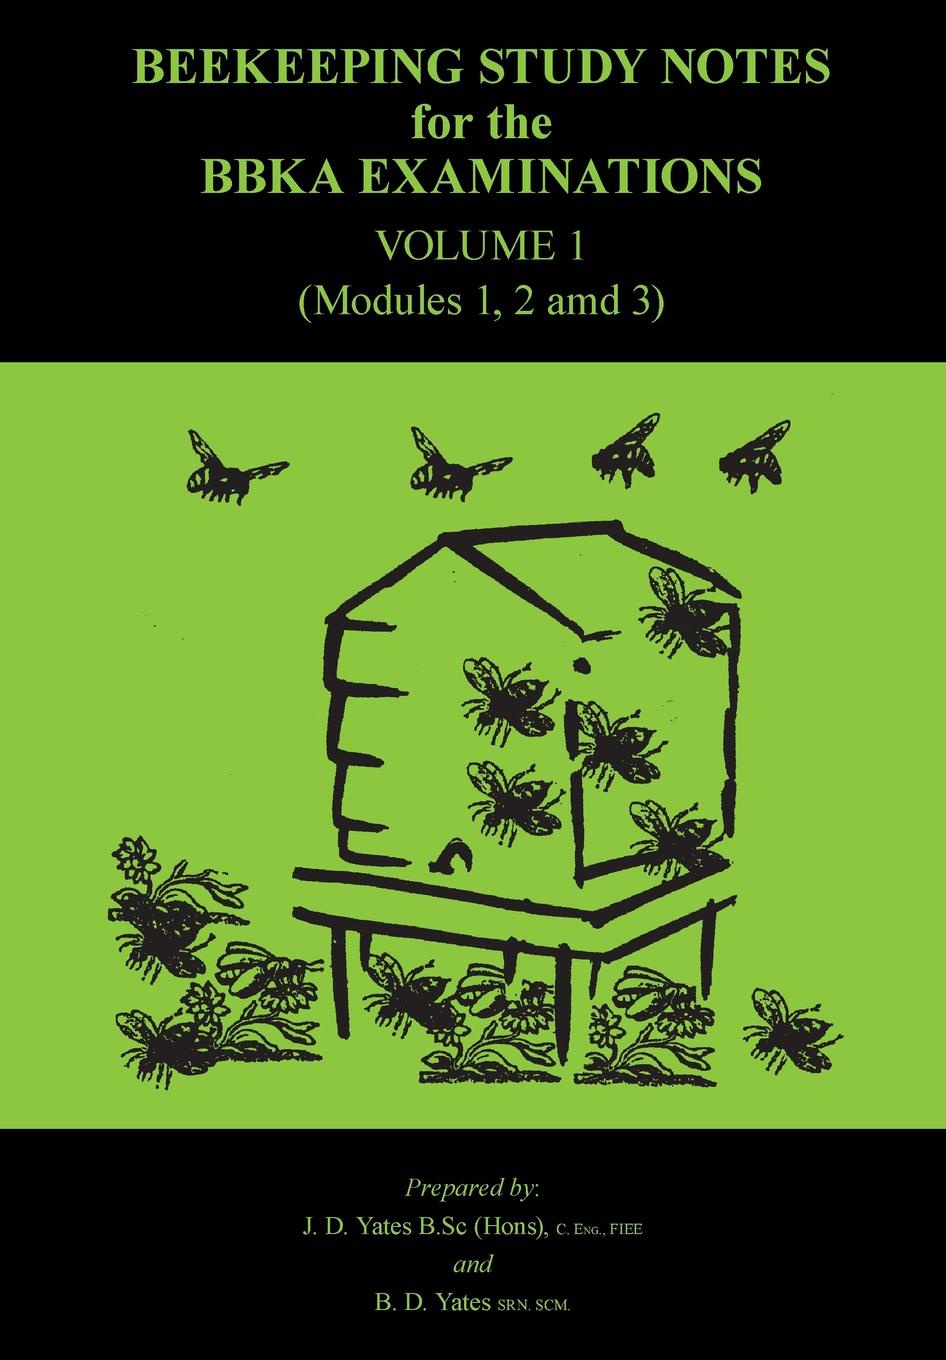 B B Yates Beekeeping Study Notes for the BBKA Examinations Volume 1 (modules 1, 2 and 3) the tkt course modules 1 2 and 3